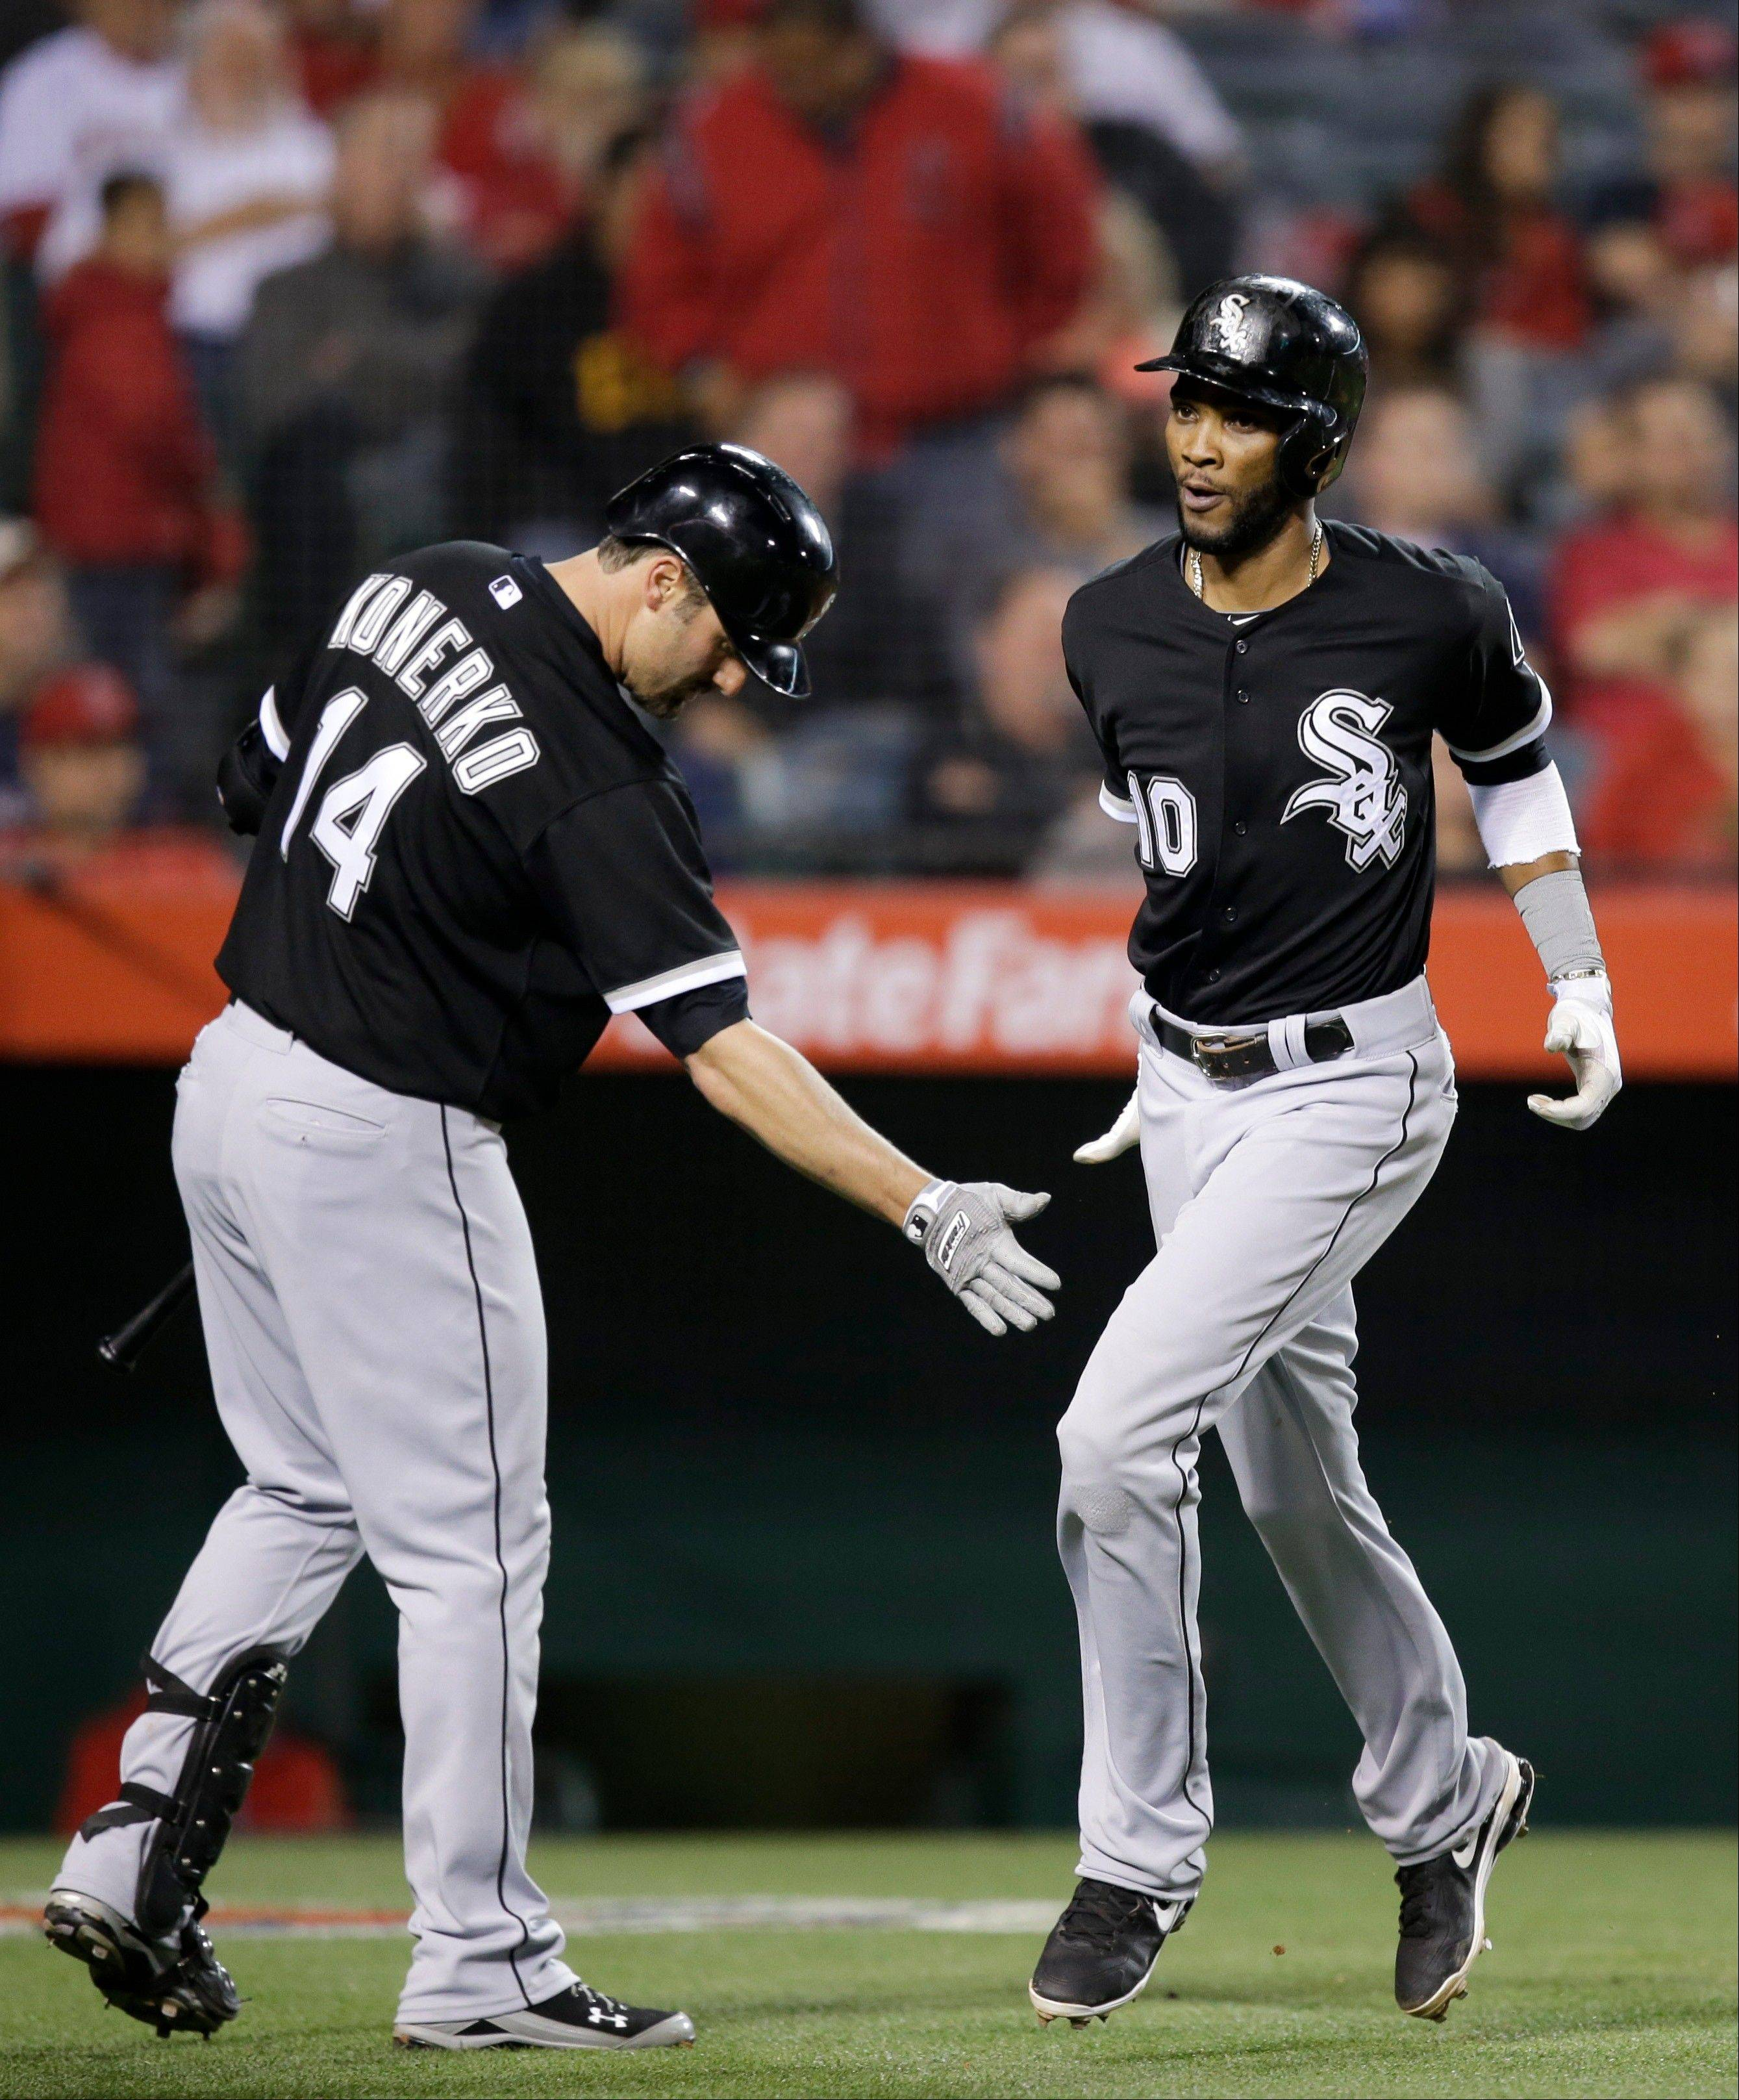 Chicago White Sox's Alexei Ramirez, right, is greeted by Paul Konerko after he scored on a single by Adam Dunn during the eighth inning of a baseball game against the Los Angeles Angels in Anaheim, Calif., Thursday, May 16, 2013.